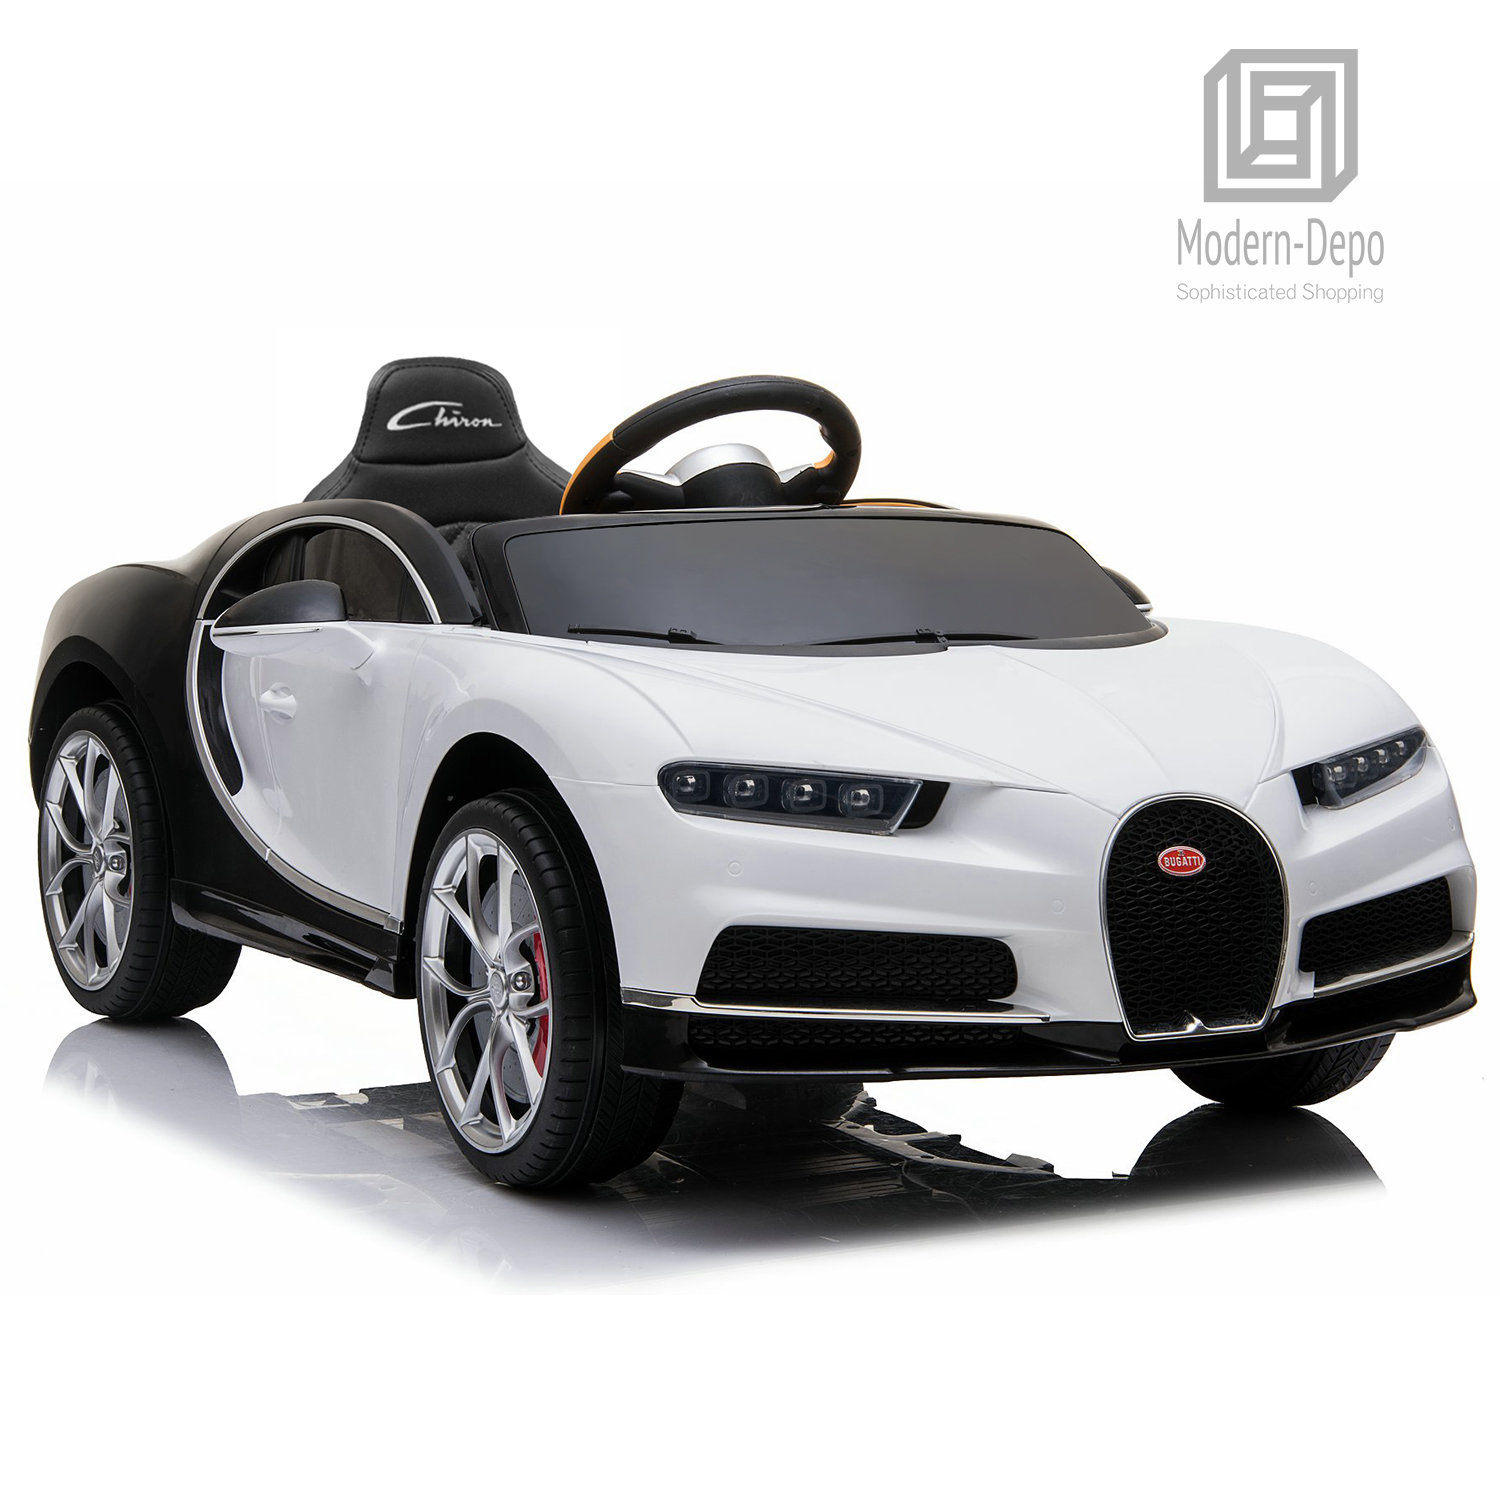 Bugatti-Chiron-12V-Kids-Ride-On-Car-with-Remote-Control-High-Speed-Motor miniature 42